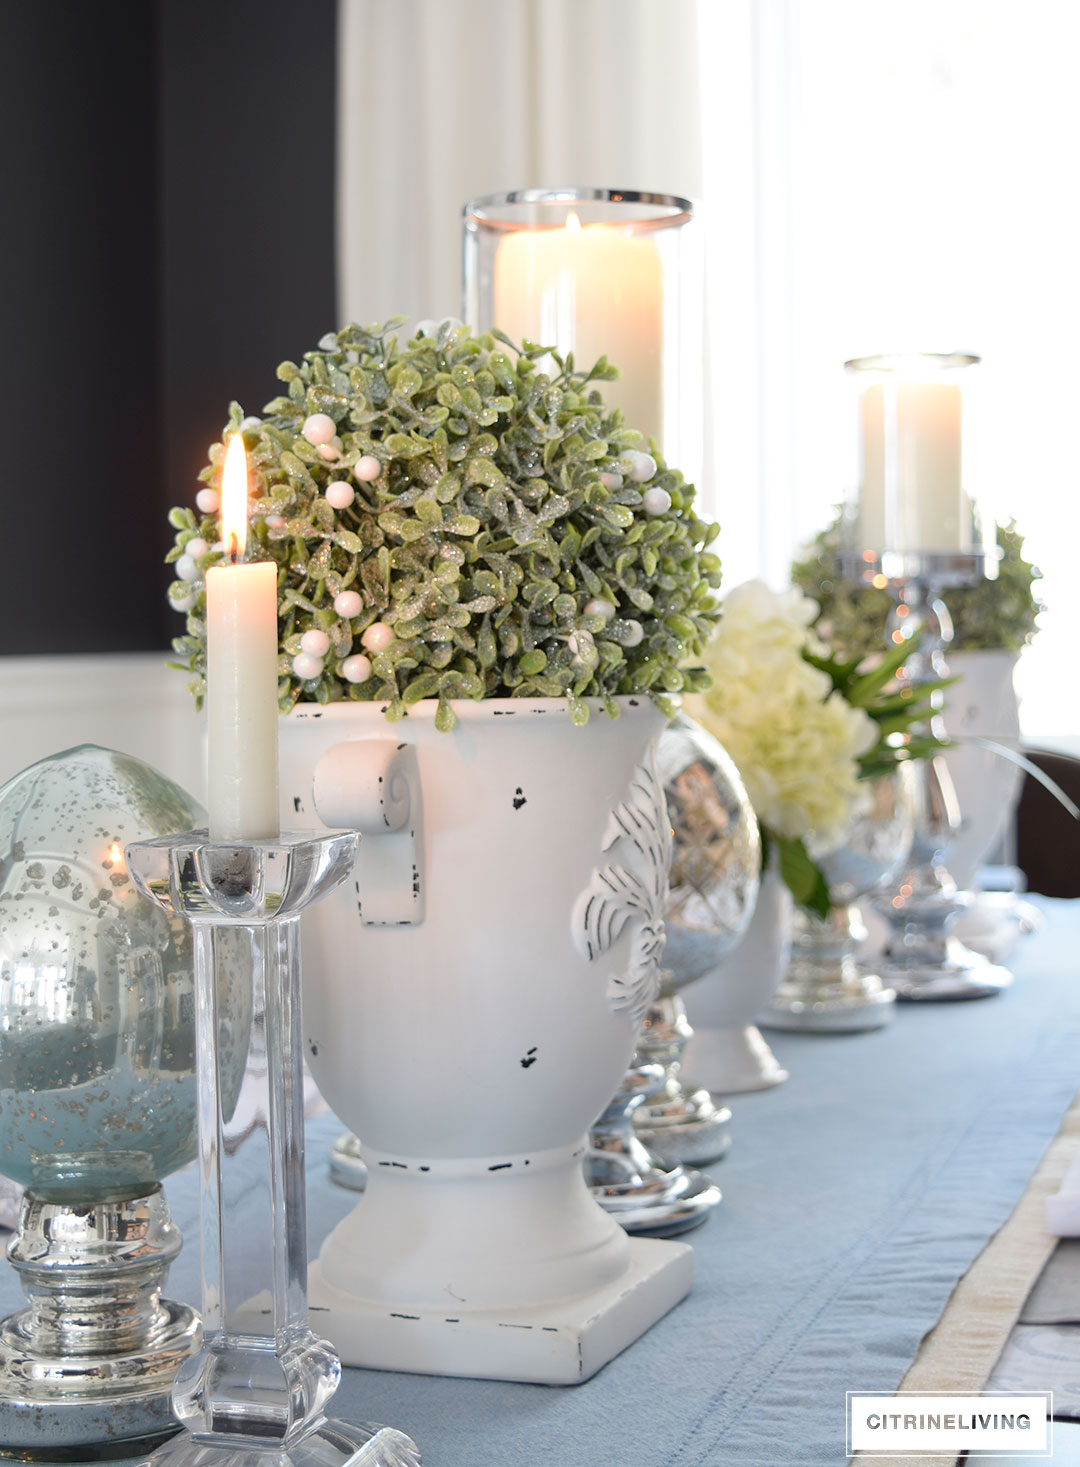 Easter or Spring tablescape with topiaries set in white urns, mixed with mercury glass and crystal accents.